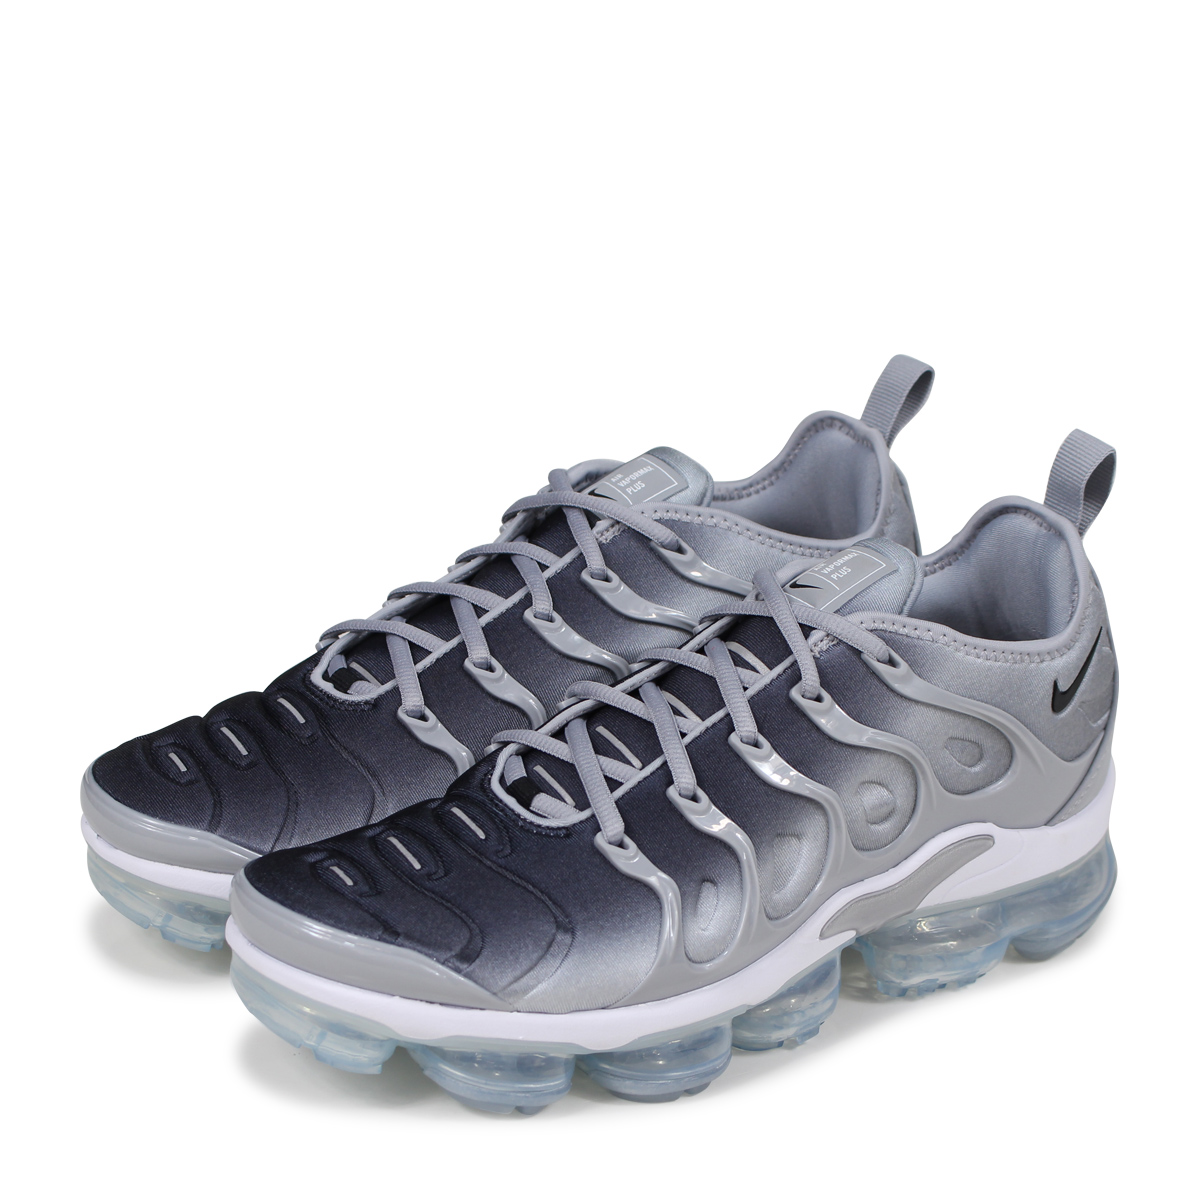 size 40 f815b 85237 NIKE AIR VAPORMAX PLUS Nike air vapor max plus sneakers men 924,453-007  gray [load planned Shinnyu load in reservation product 5/12 containing]  [185]